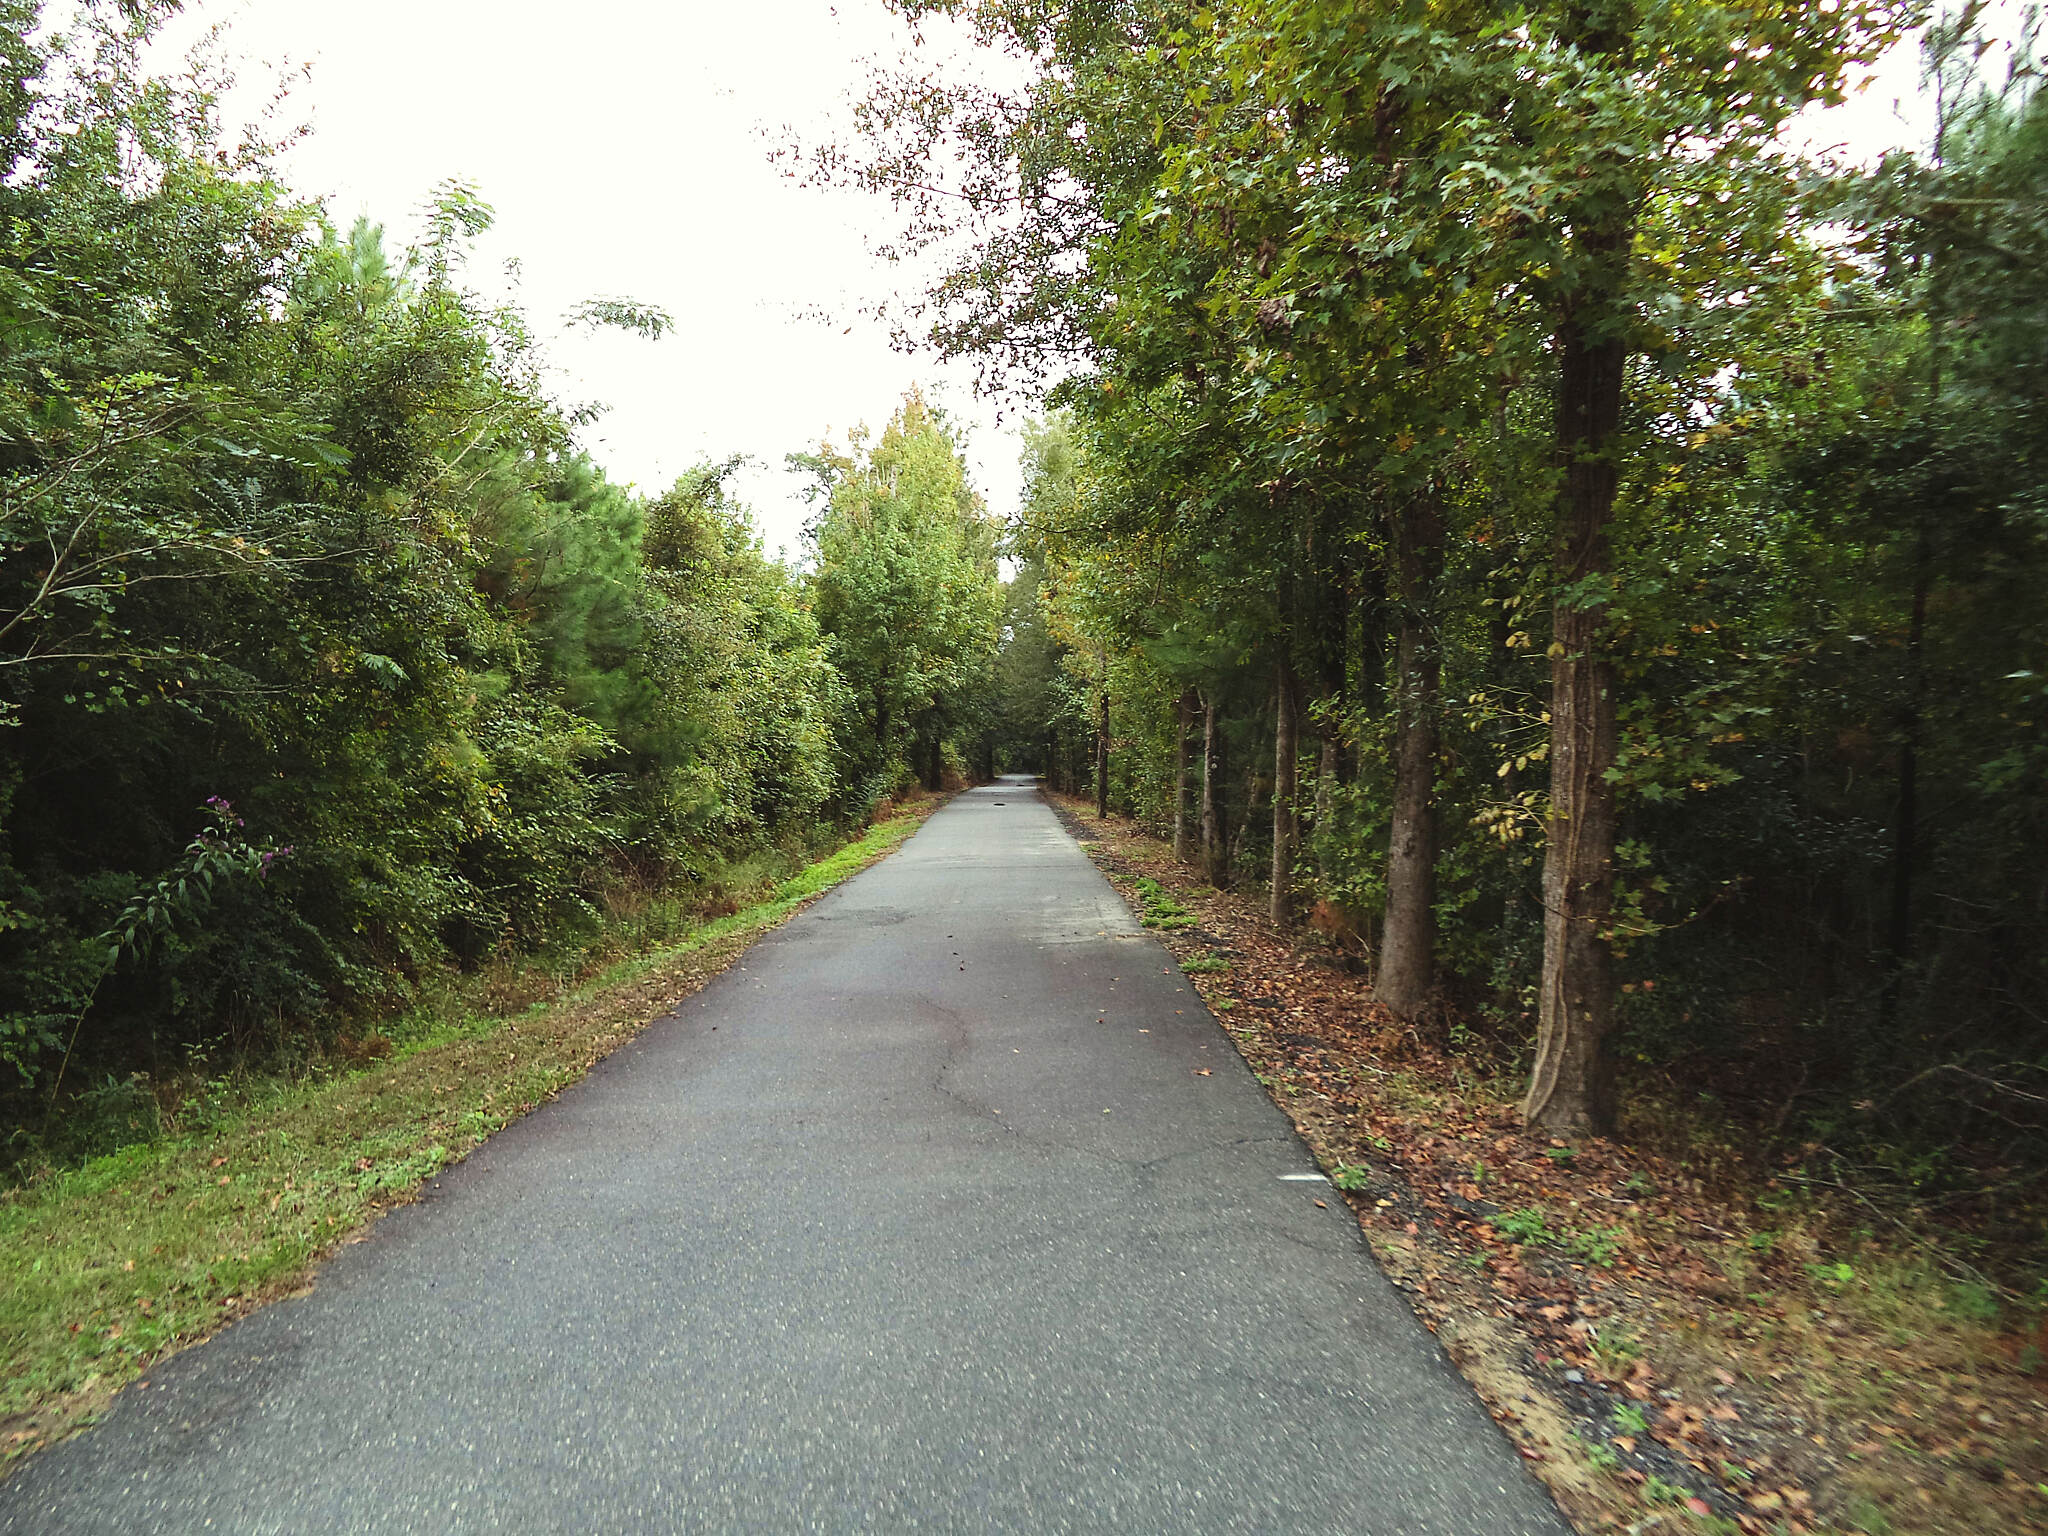 Blountstown Greenway Bike Path Blountstown Greenway Bike Pat Photo submitted by: billbrockman